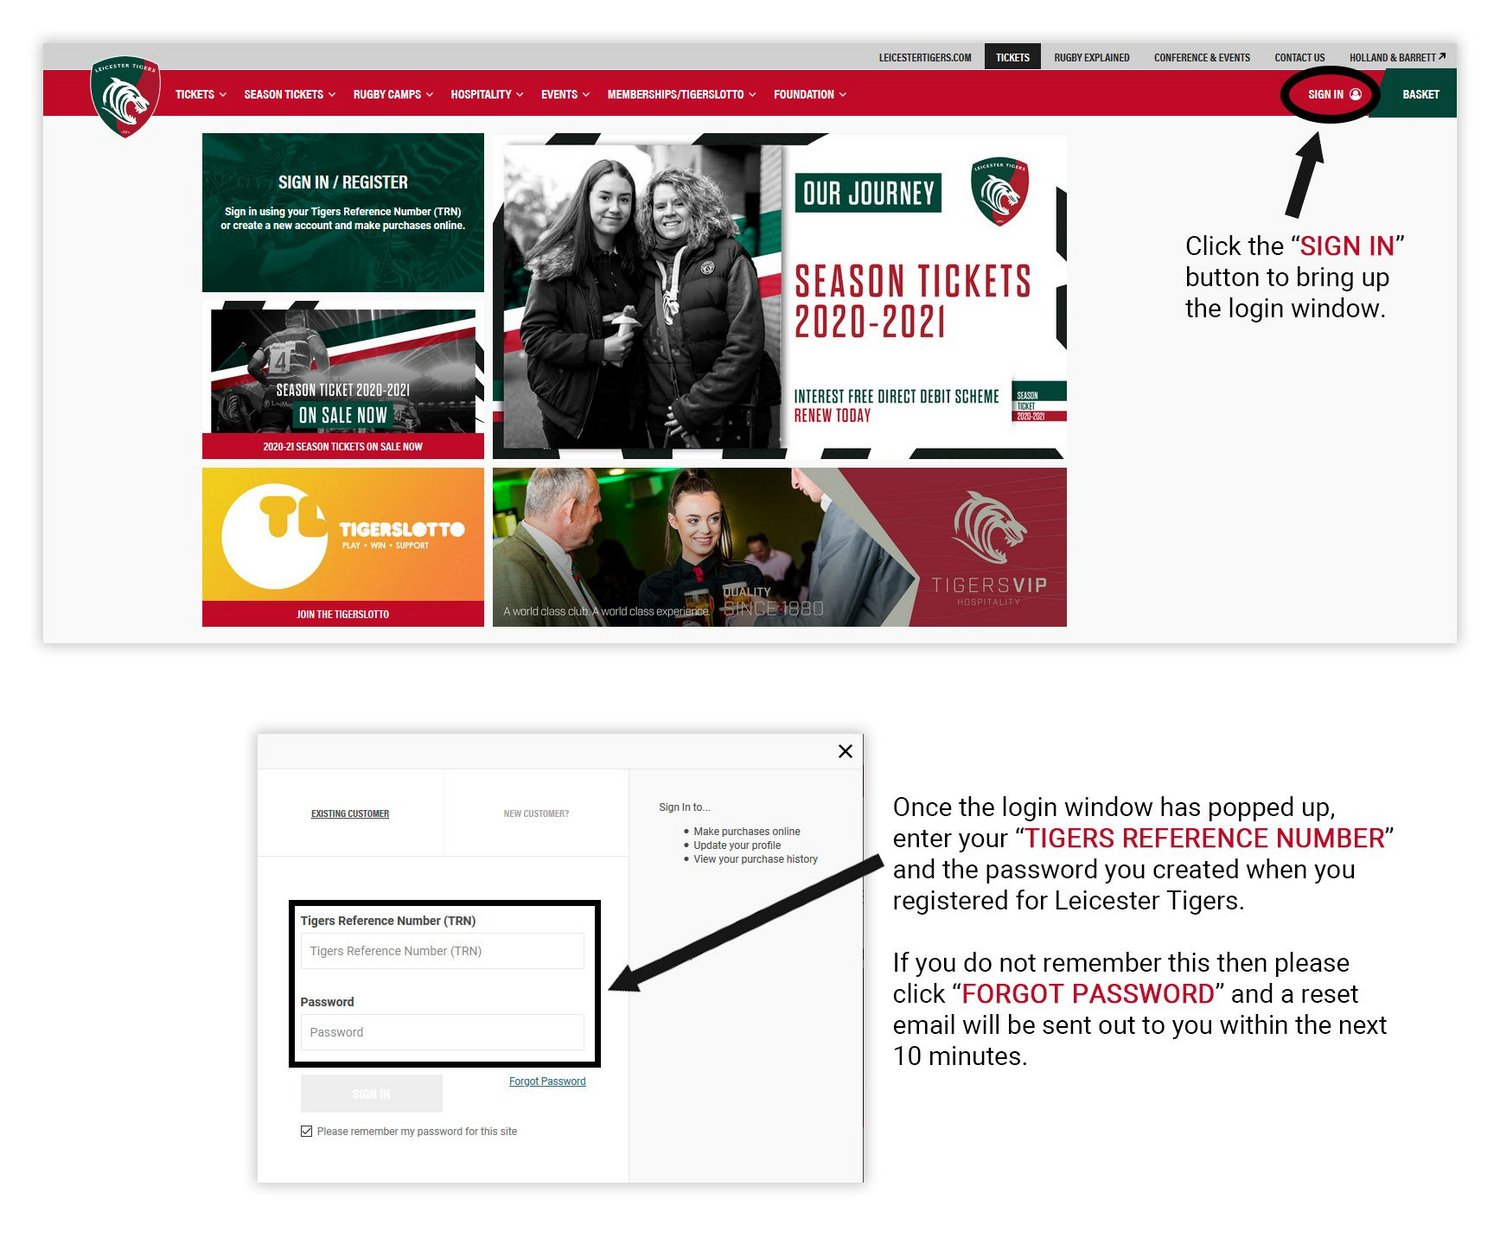 Leicester Tigers information